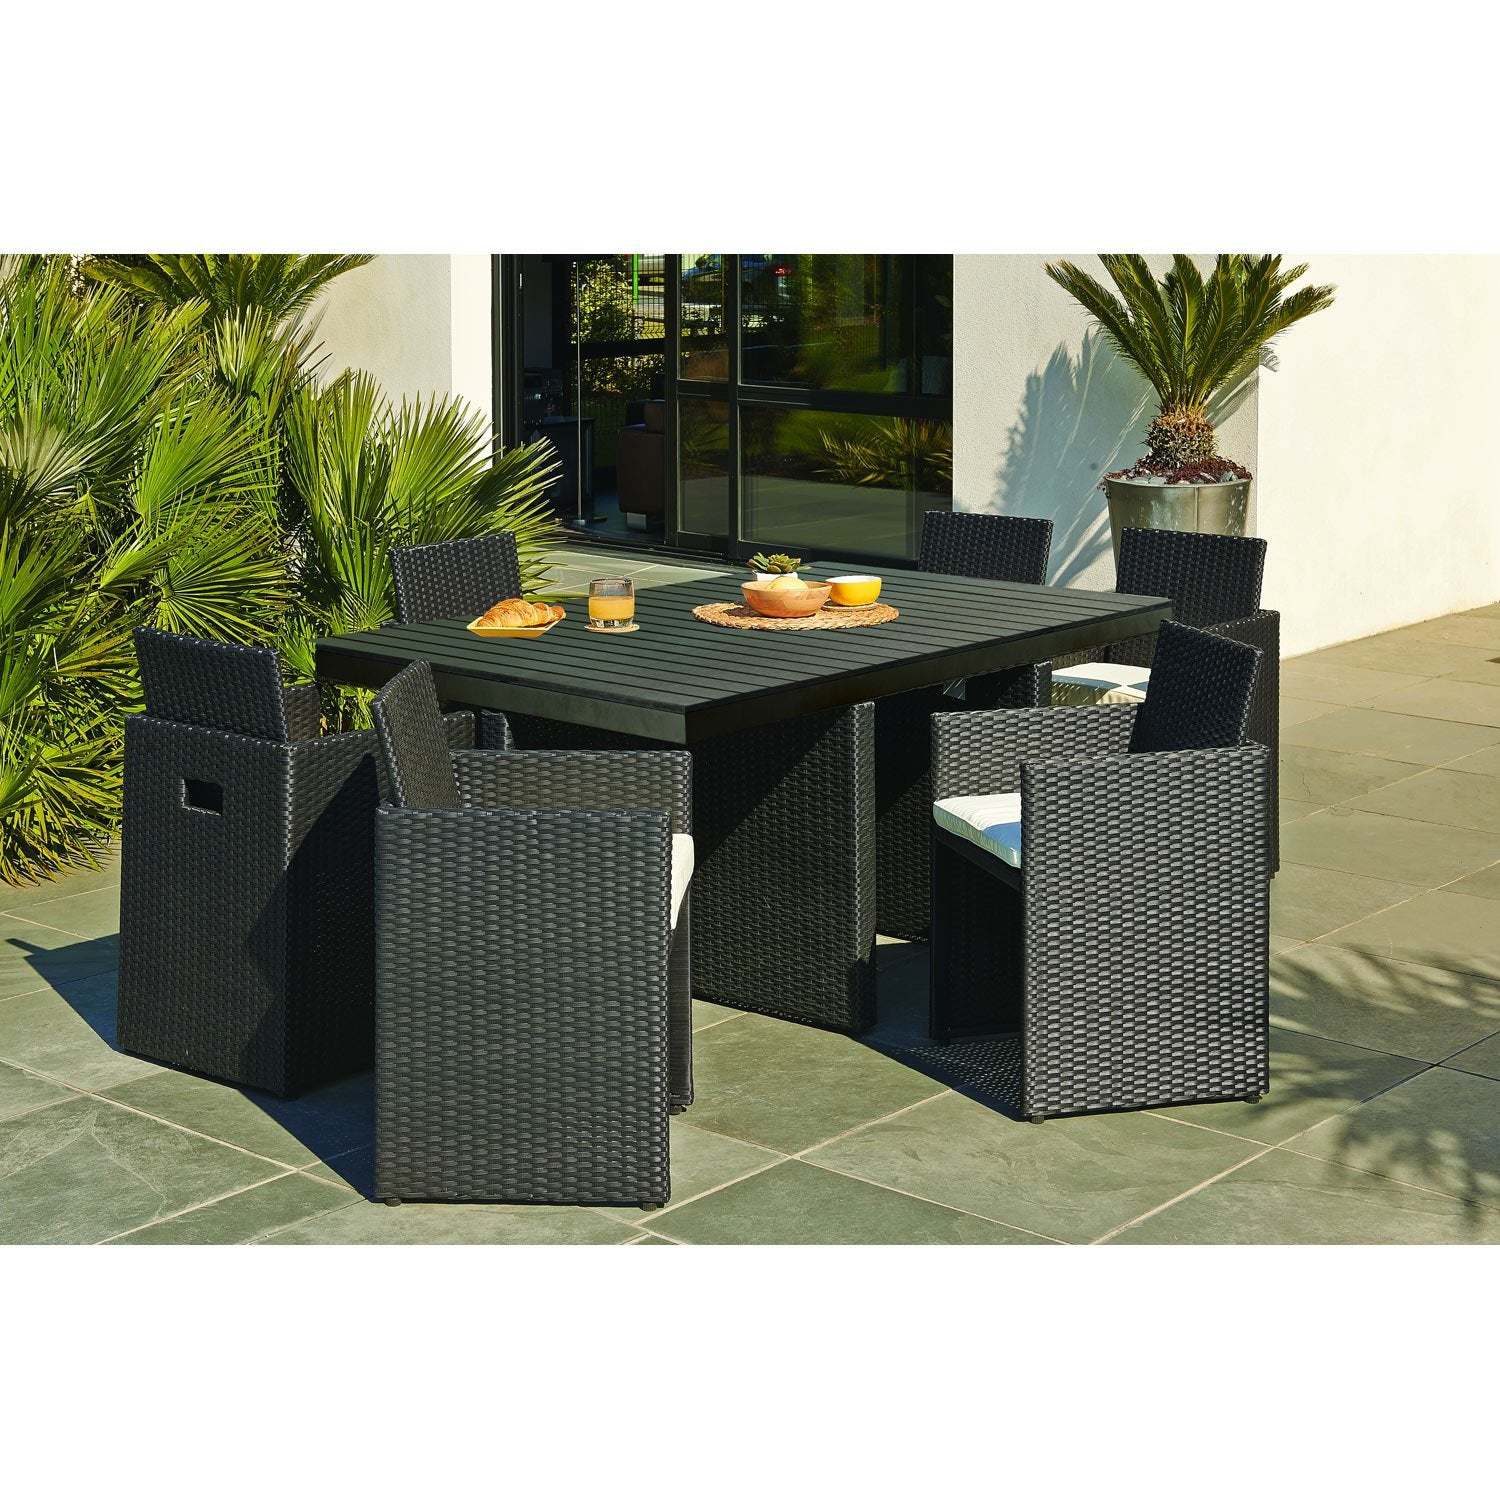 Salon de jardin encastrable r sine tress e noir 1 table for Petit salon de jardin resine